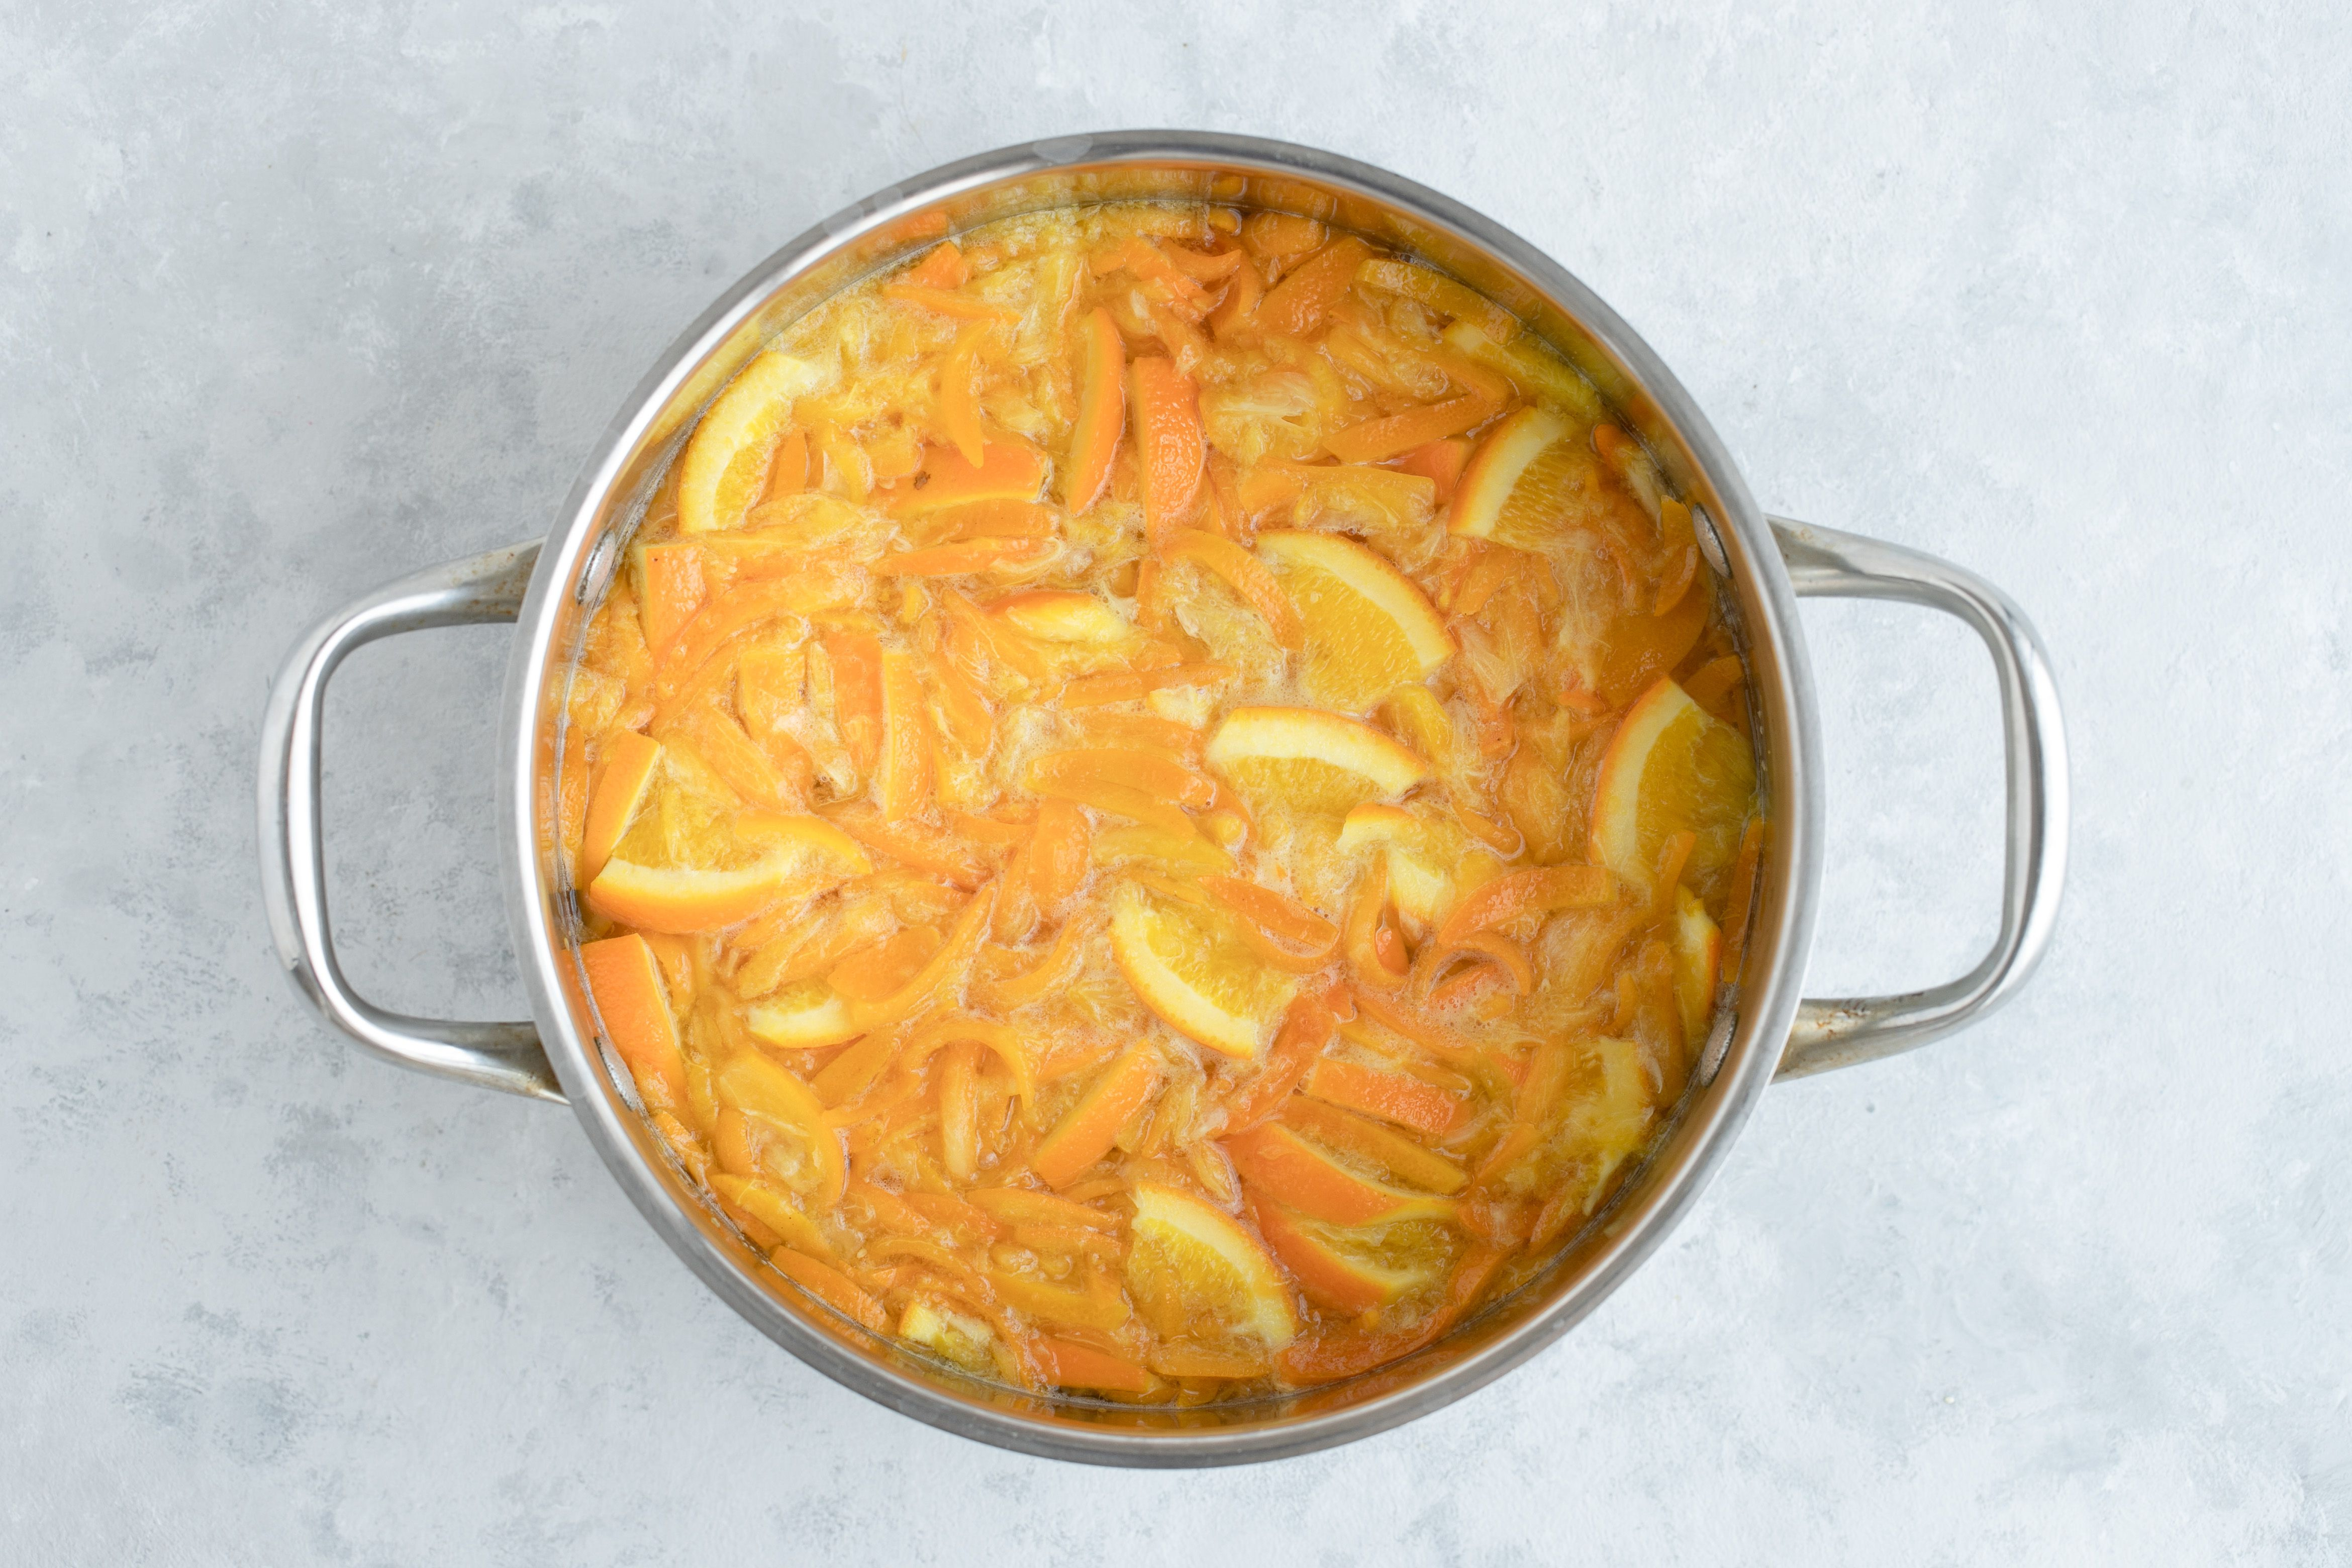 Bring mixture to a boil